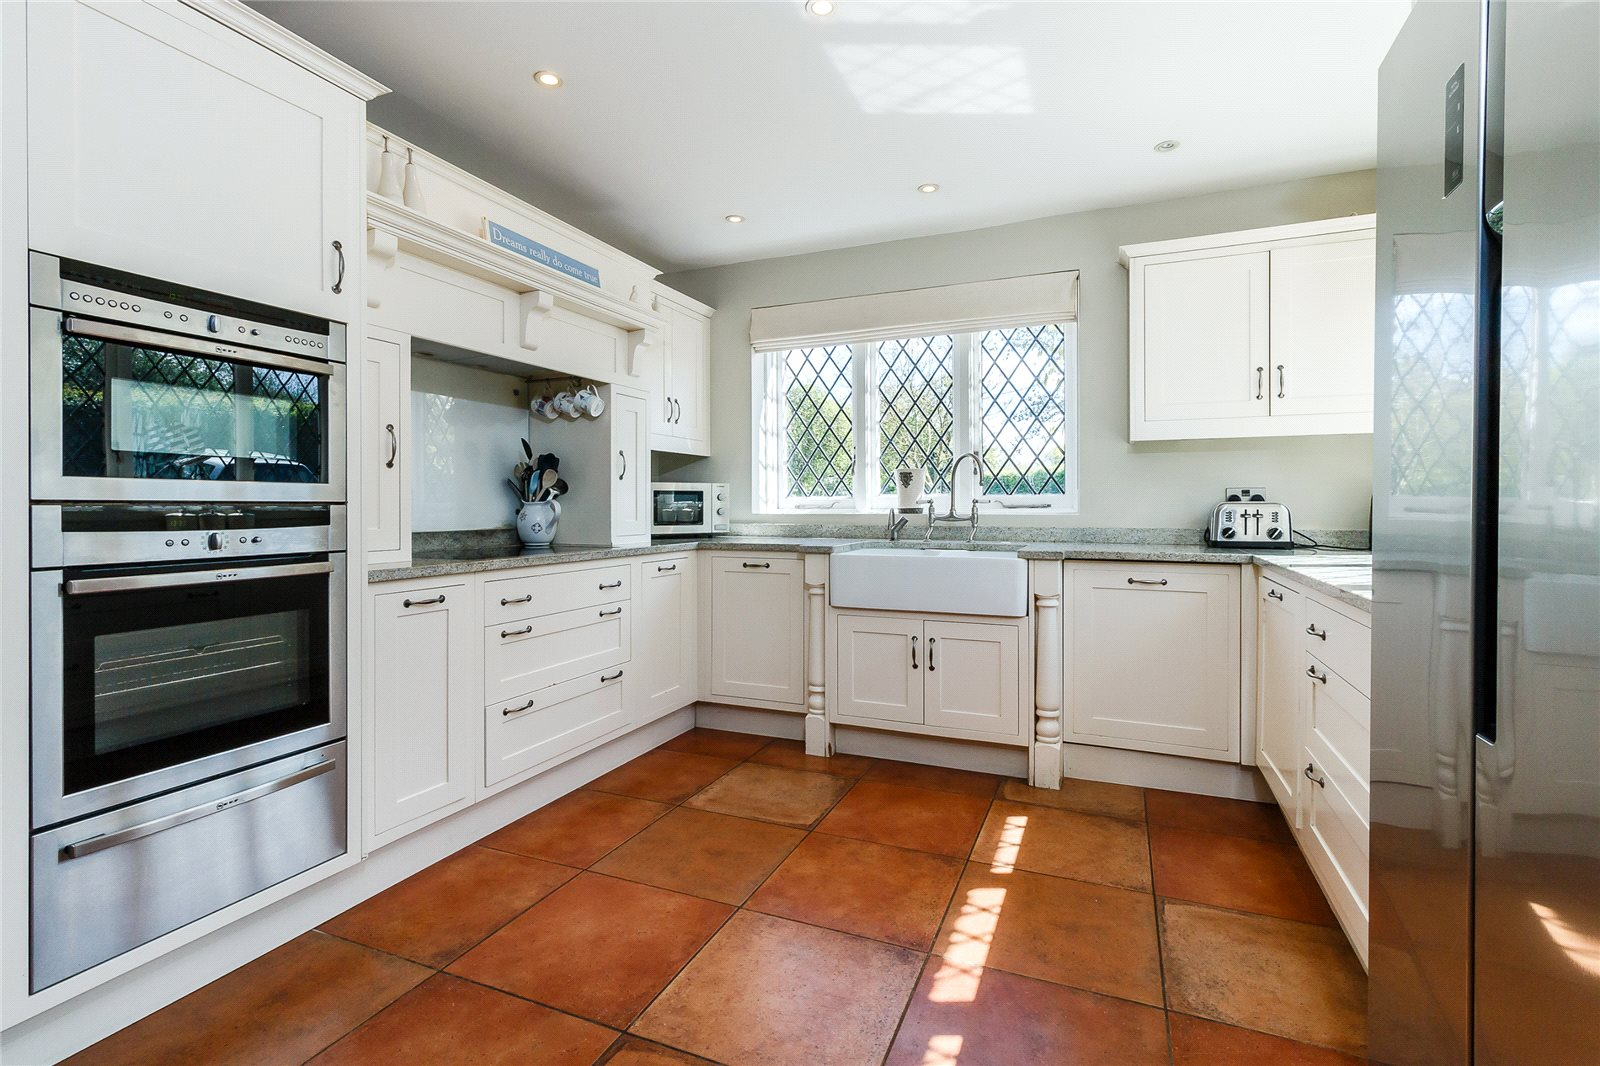 Additional photo for property listing at Sheepcote Lane, Paley Street, Nr Maidenhead, Berkshire, SL6 Berkshire, Αγγλια